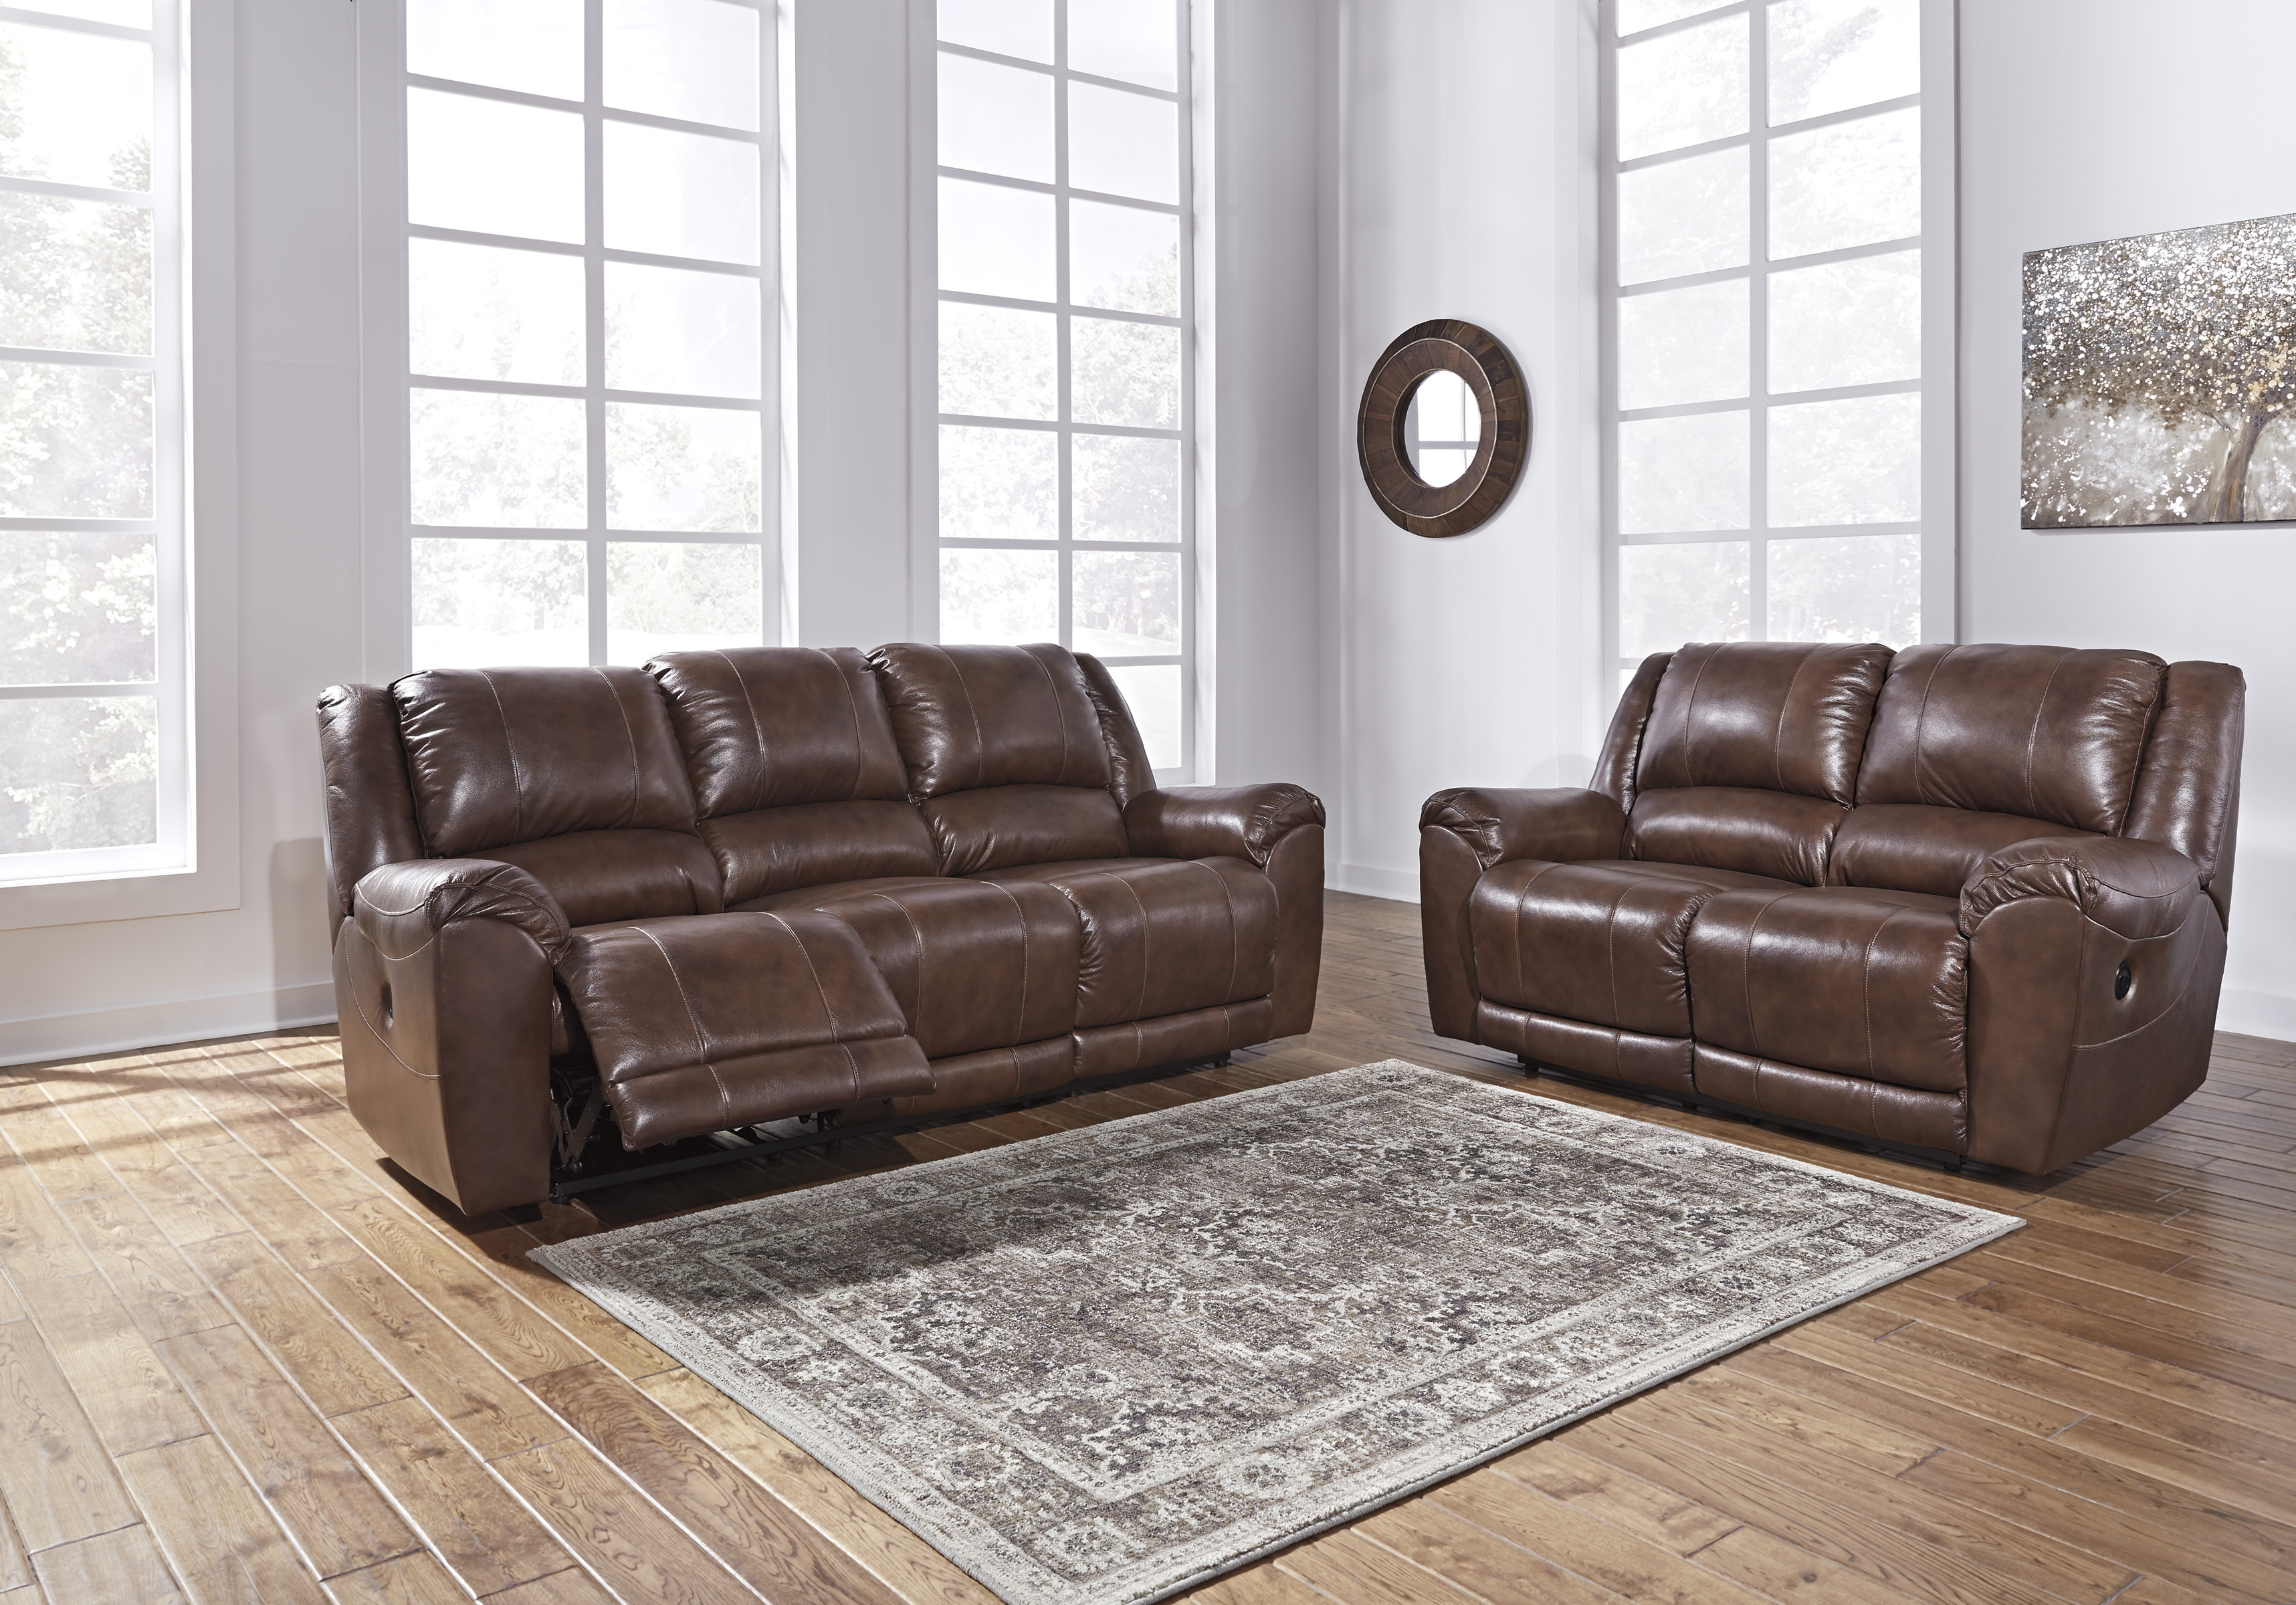 Persiphone Canyon Power Reclining Sofa & Loveseat,Signature Design By Ashley